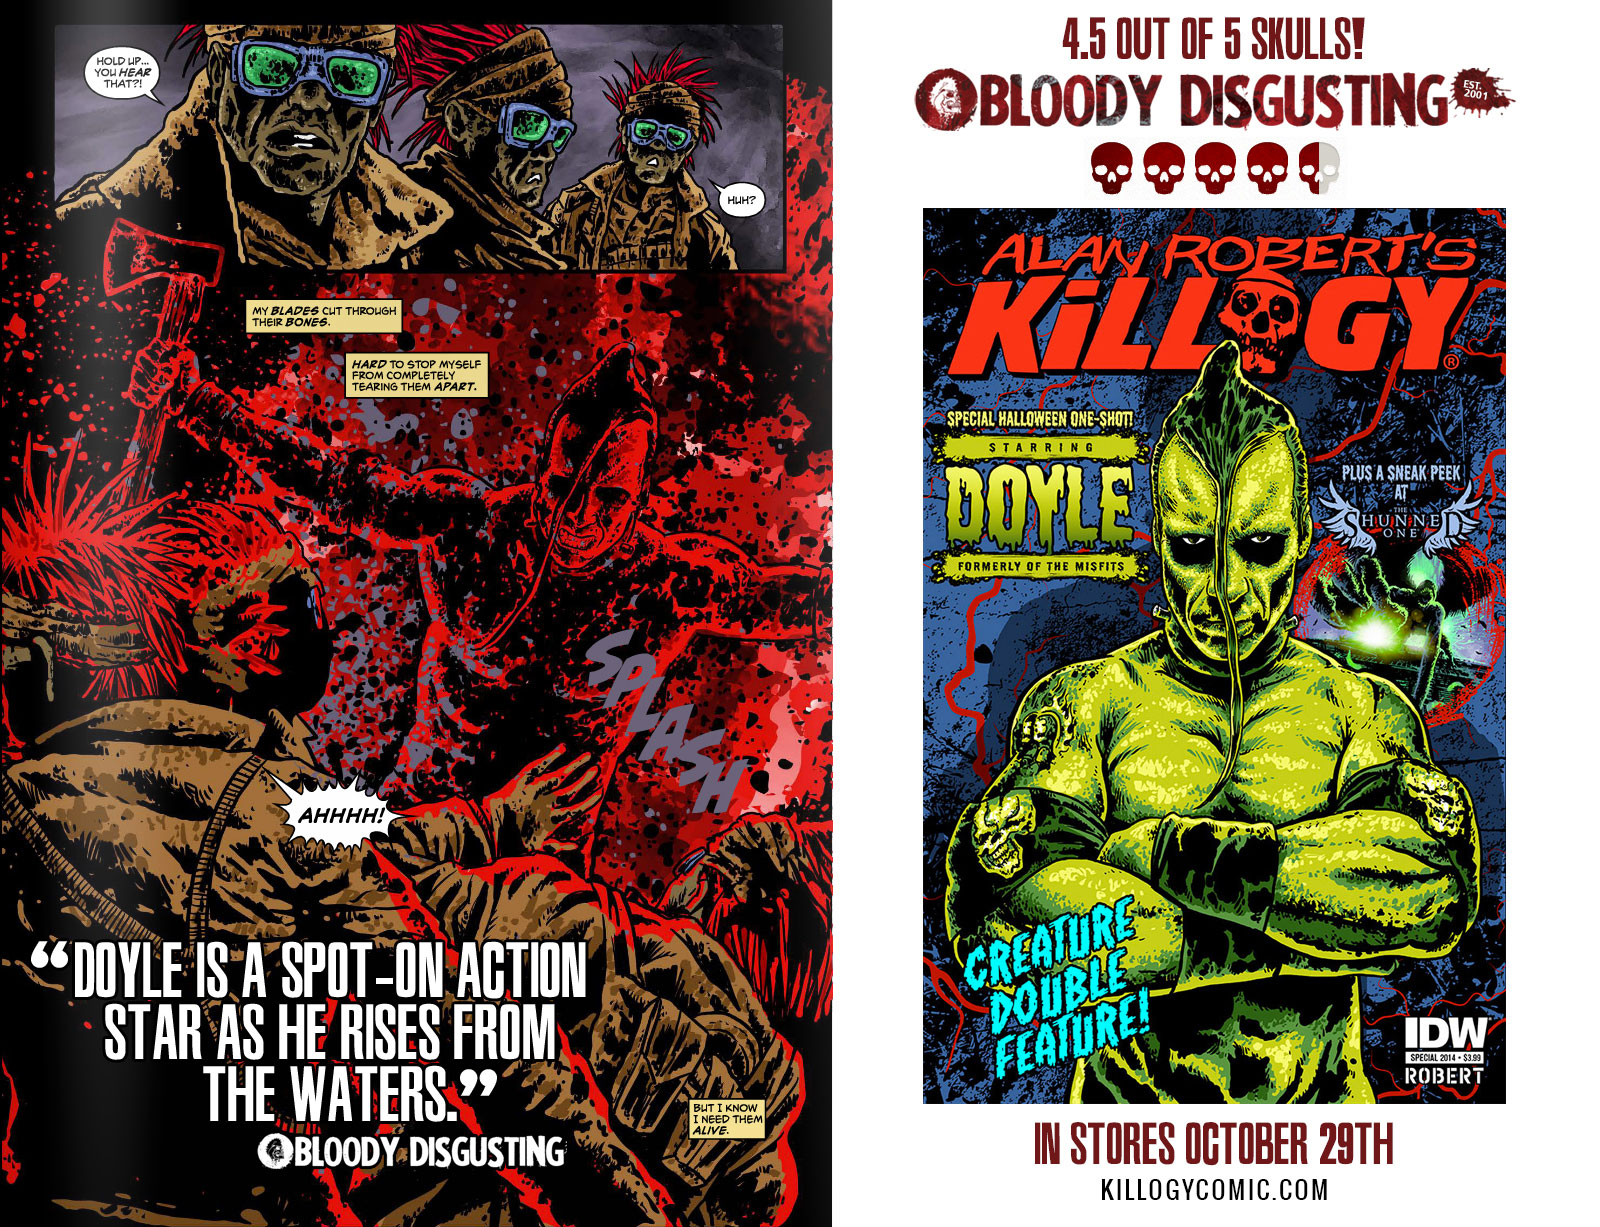 KILLOGY Comic Starring Doyle of The Misfits